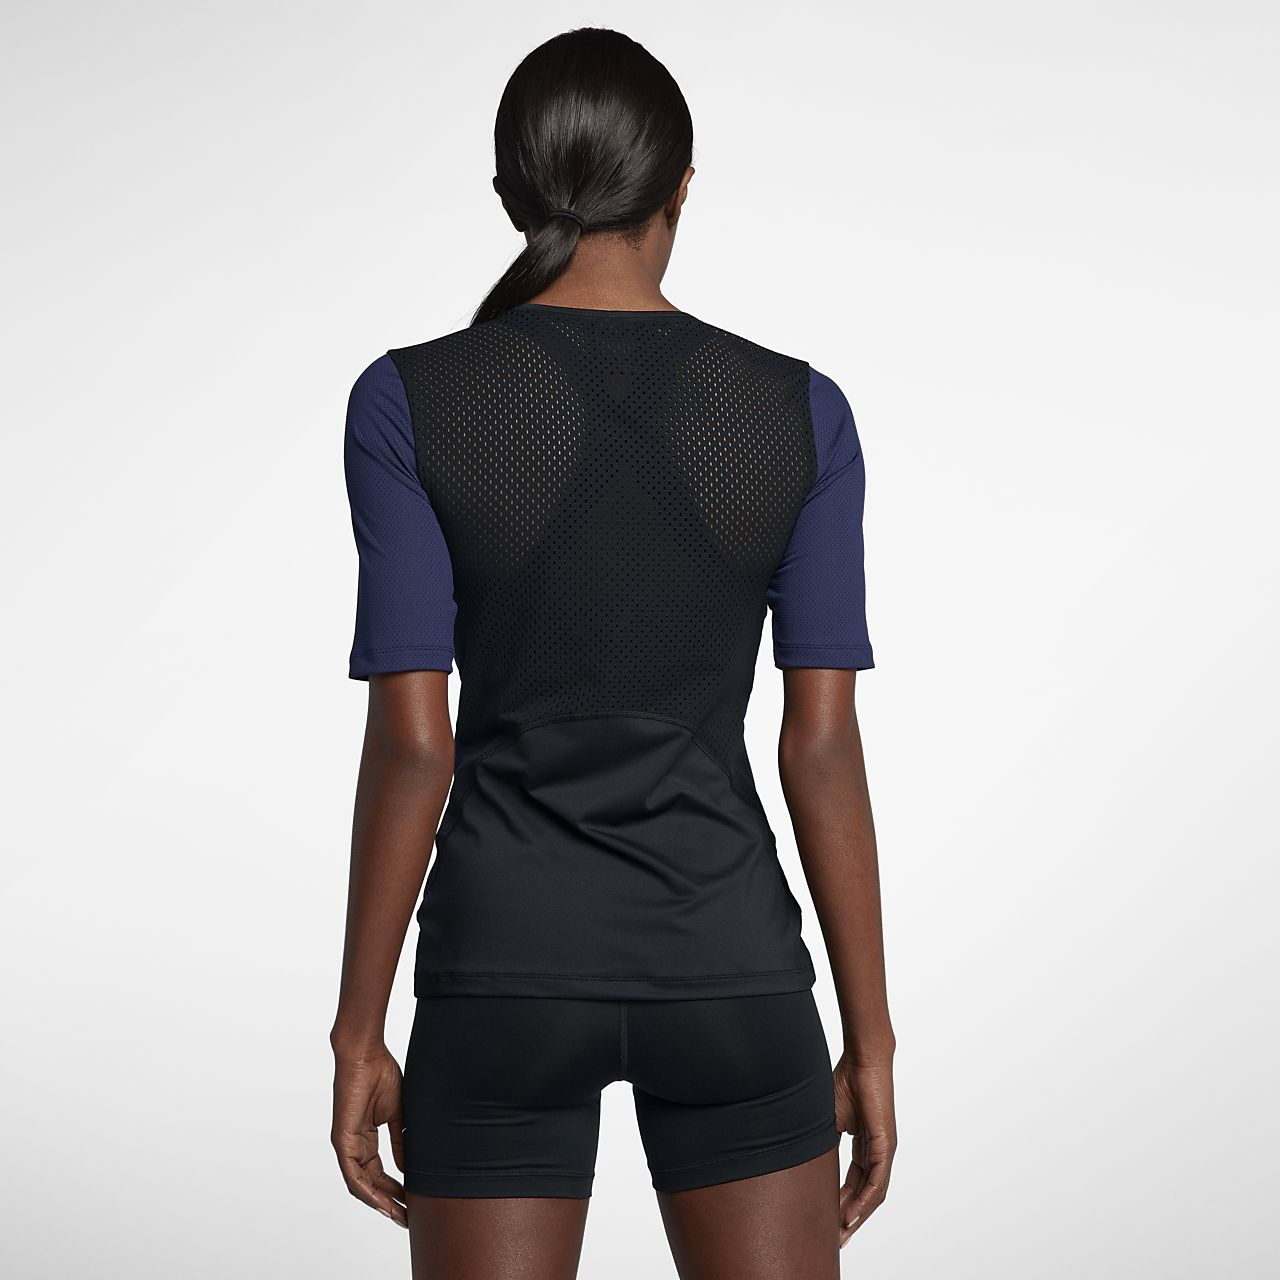 ... Nike Pro HyperCool Women's Short-Sleeve Training Top